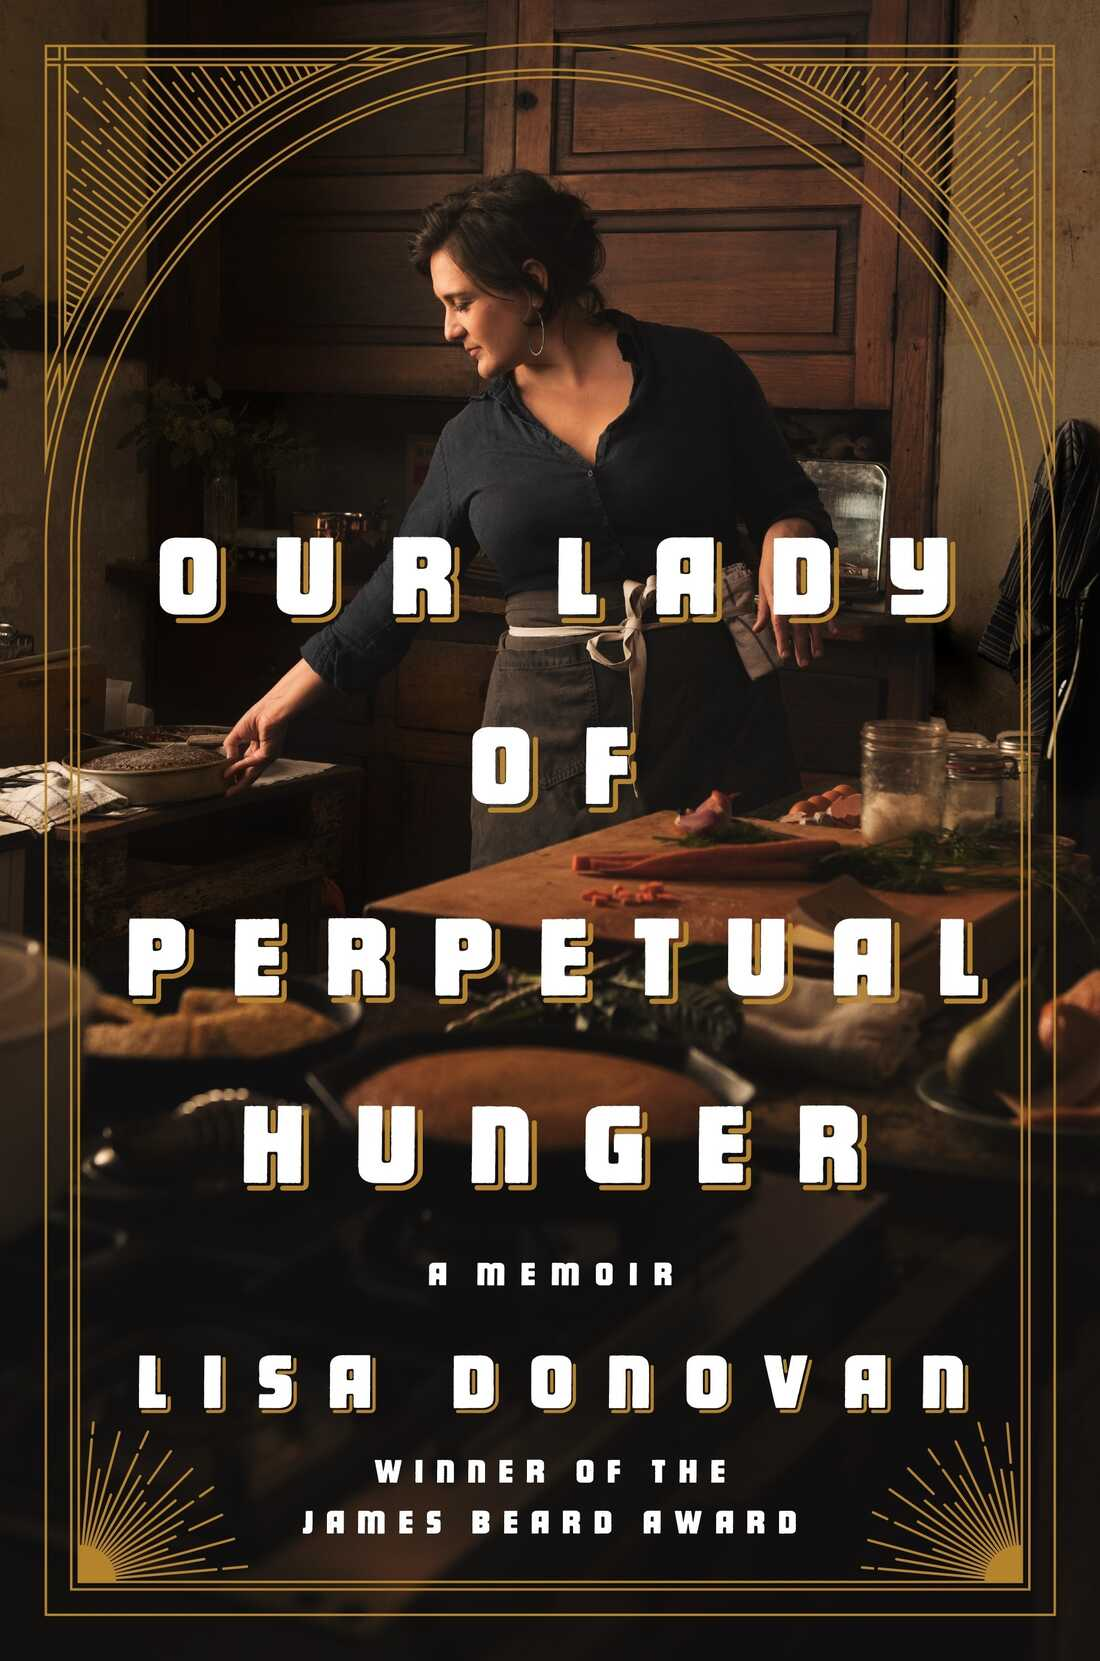 Our Lady of Perpetual Hunger, by Lisa Donovan